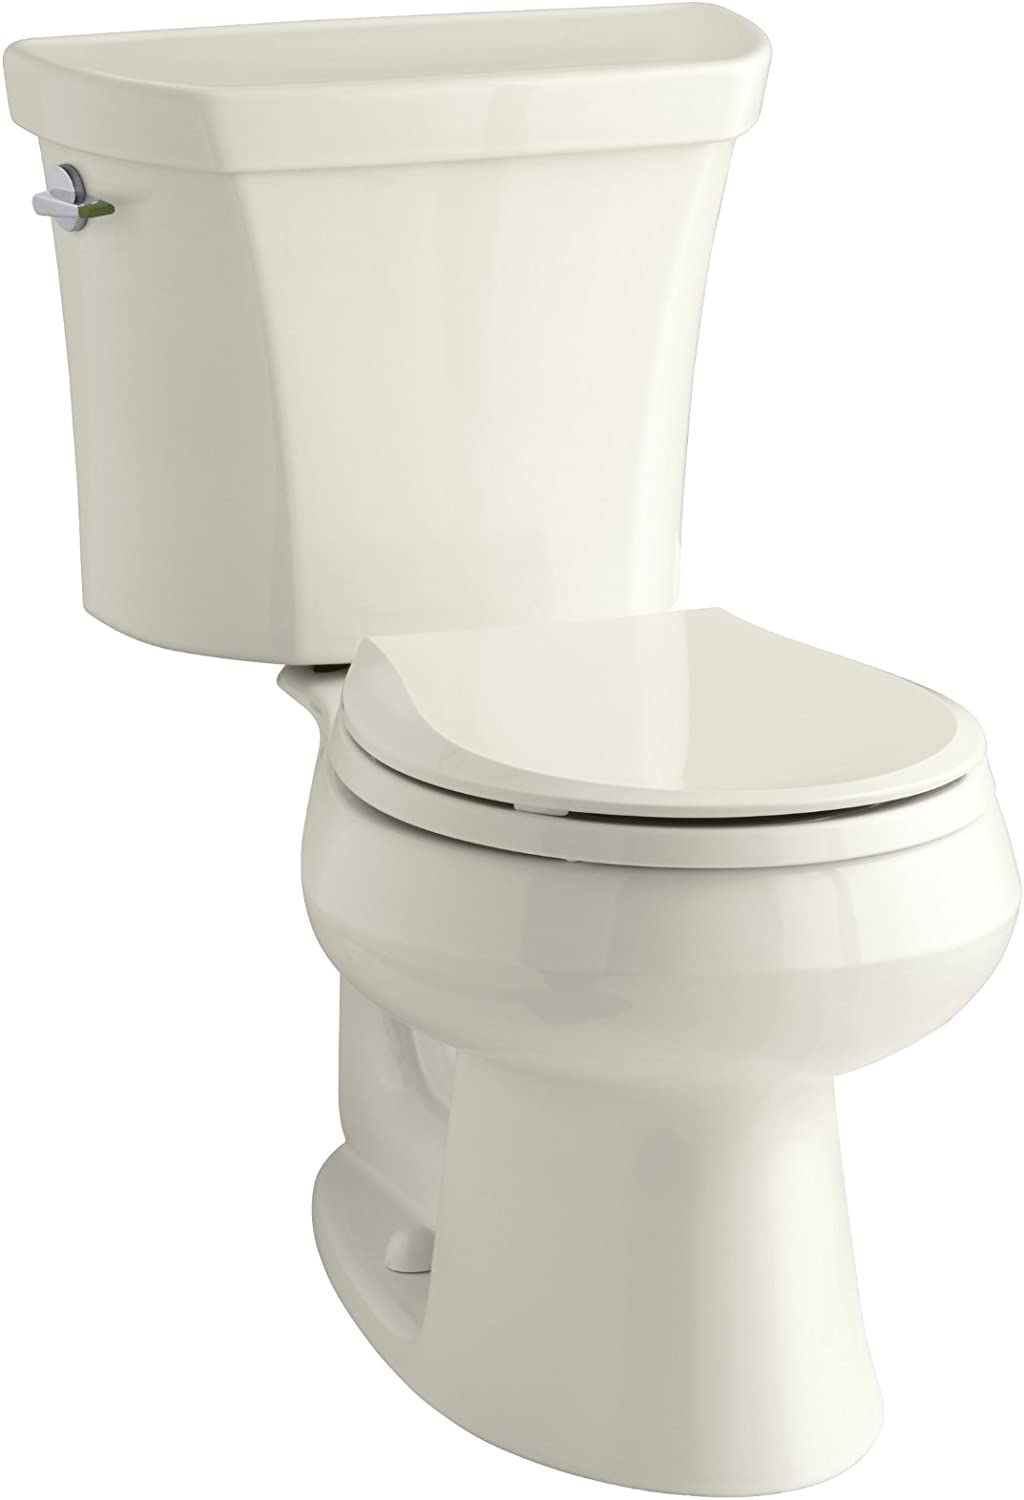 KOHLER K-3987-96 Wellworth Two-Piece Round-Front Dual-Flush Toilet with Class Five Flush System